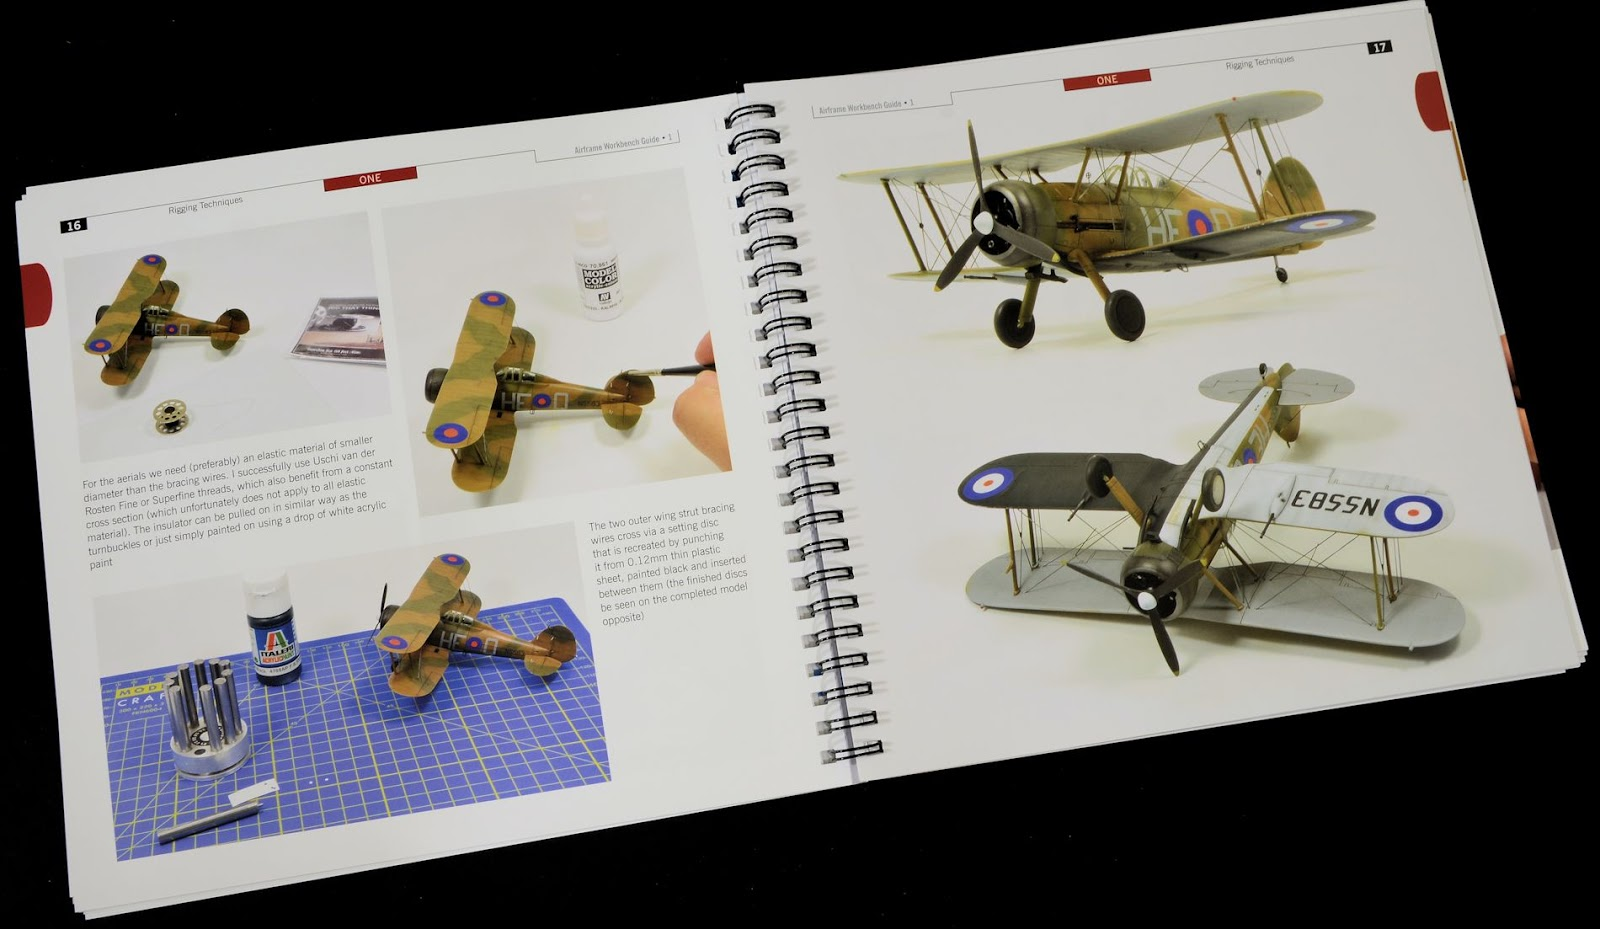 The Modelling News: Valiant Wings Publishing's new Workbench Guide